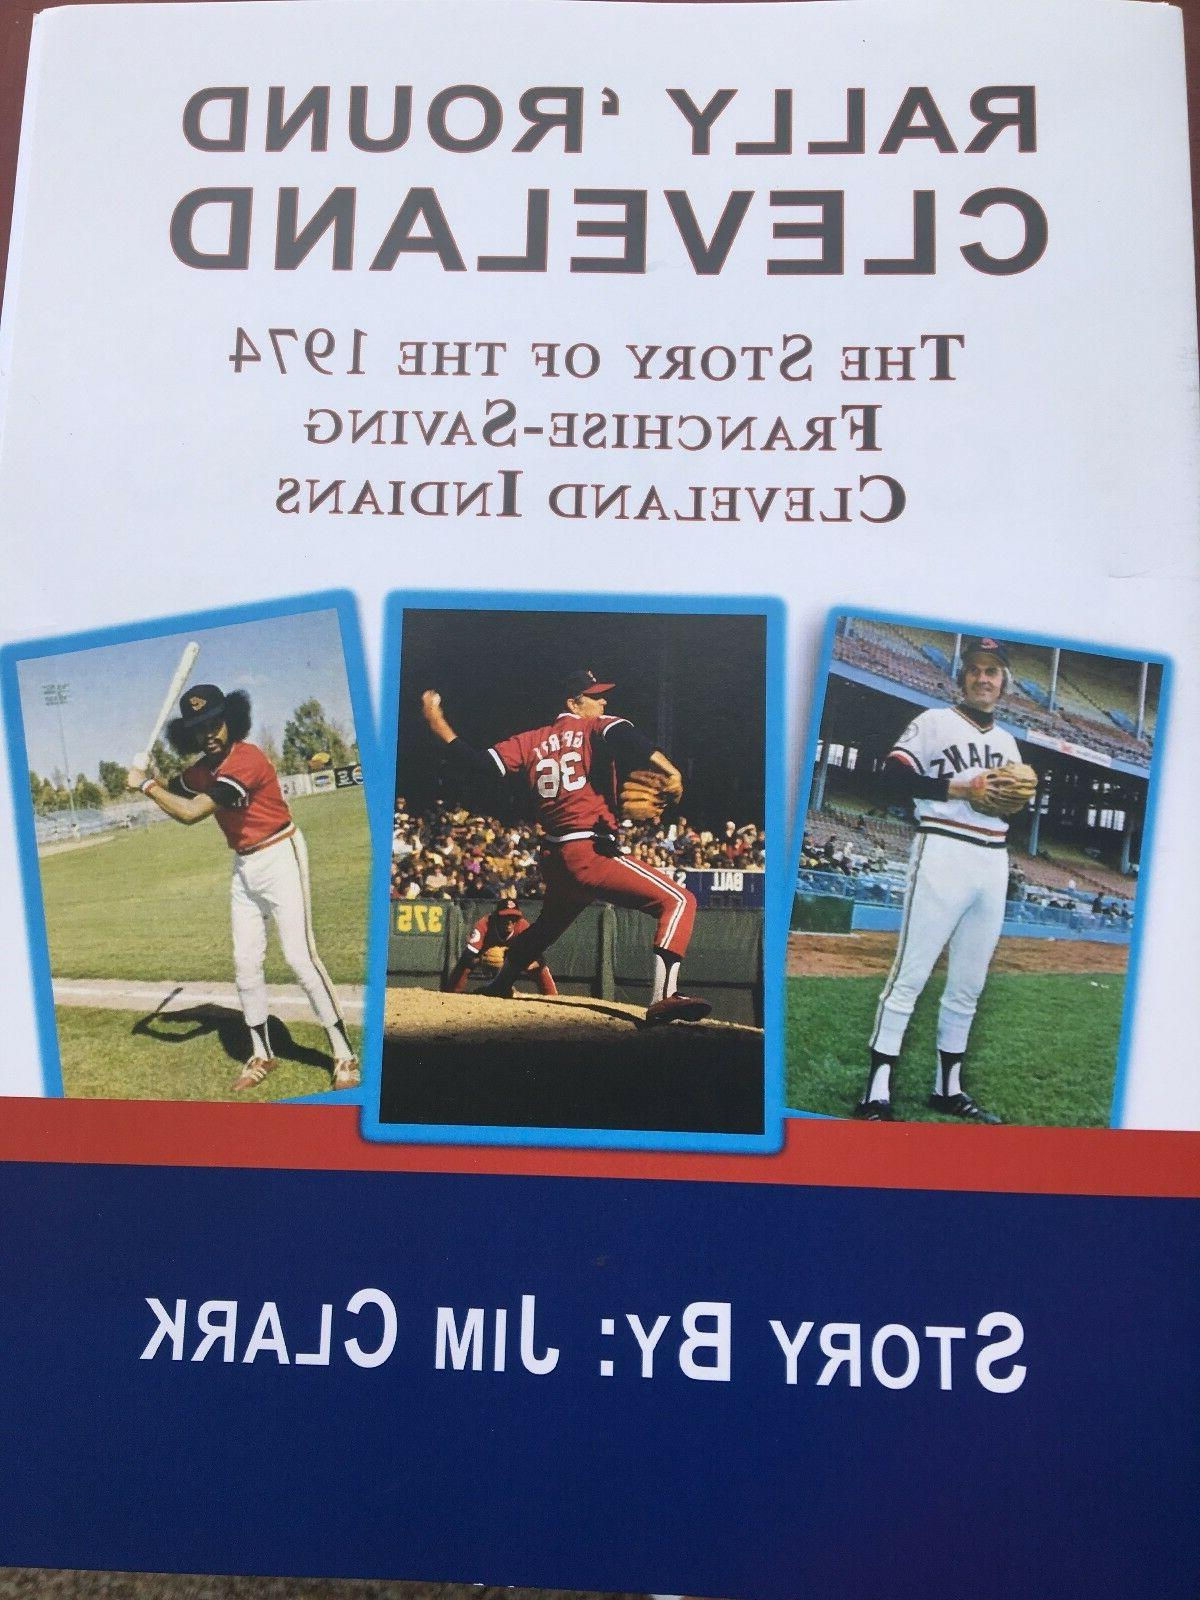 cleveland indians rally round cleveland book